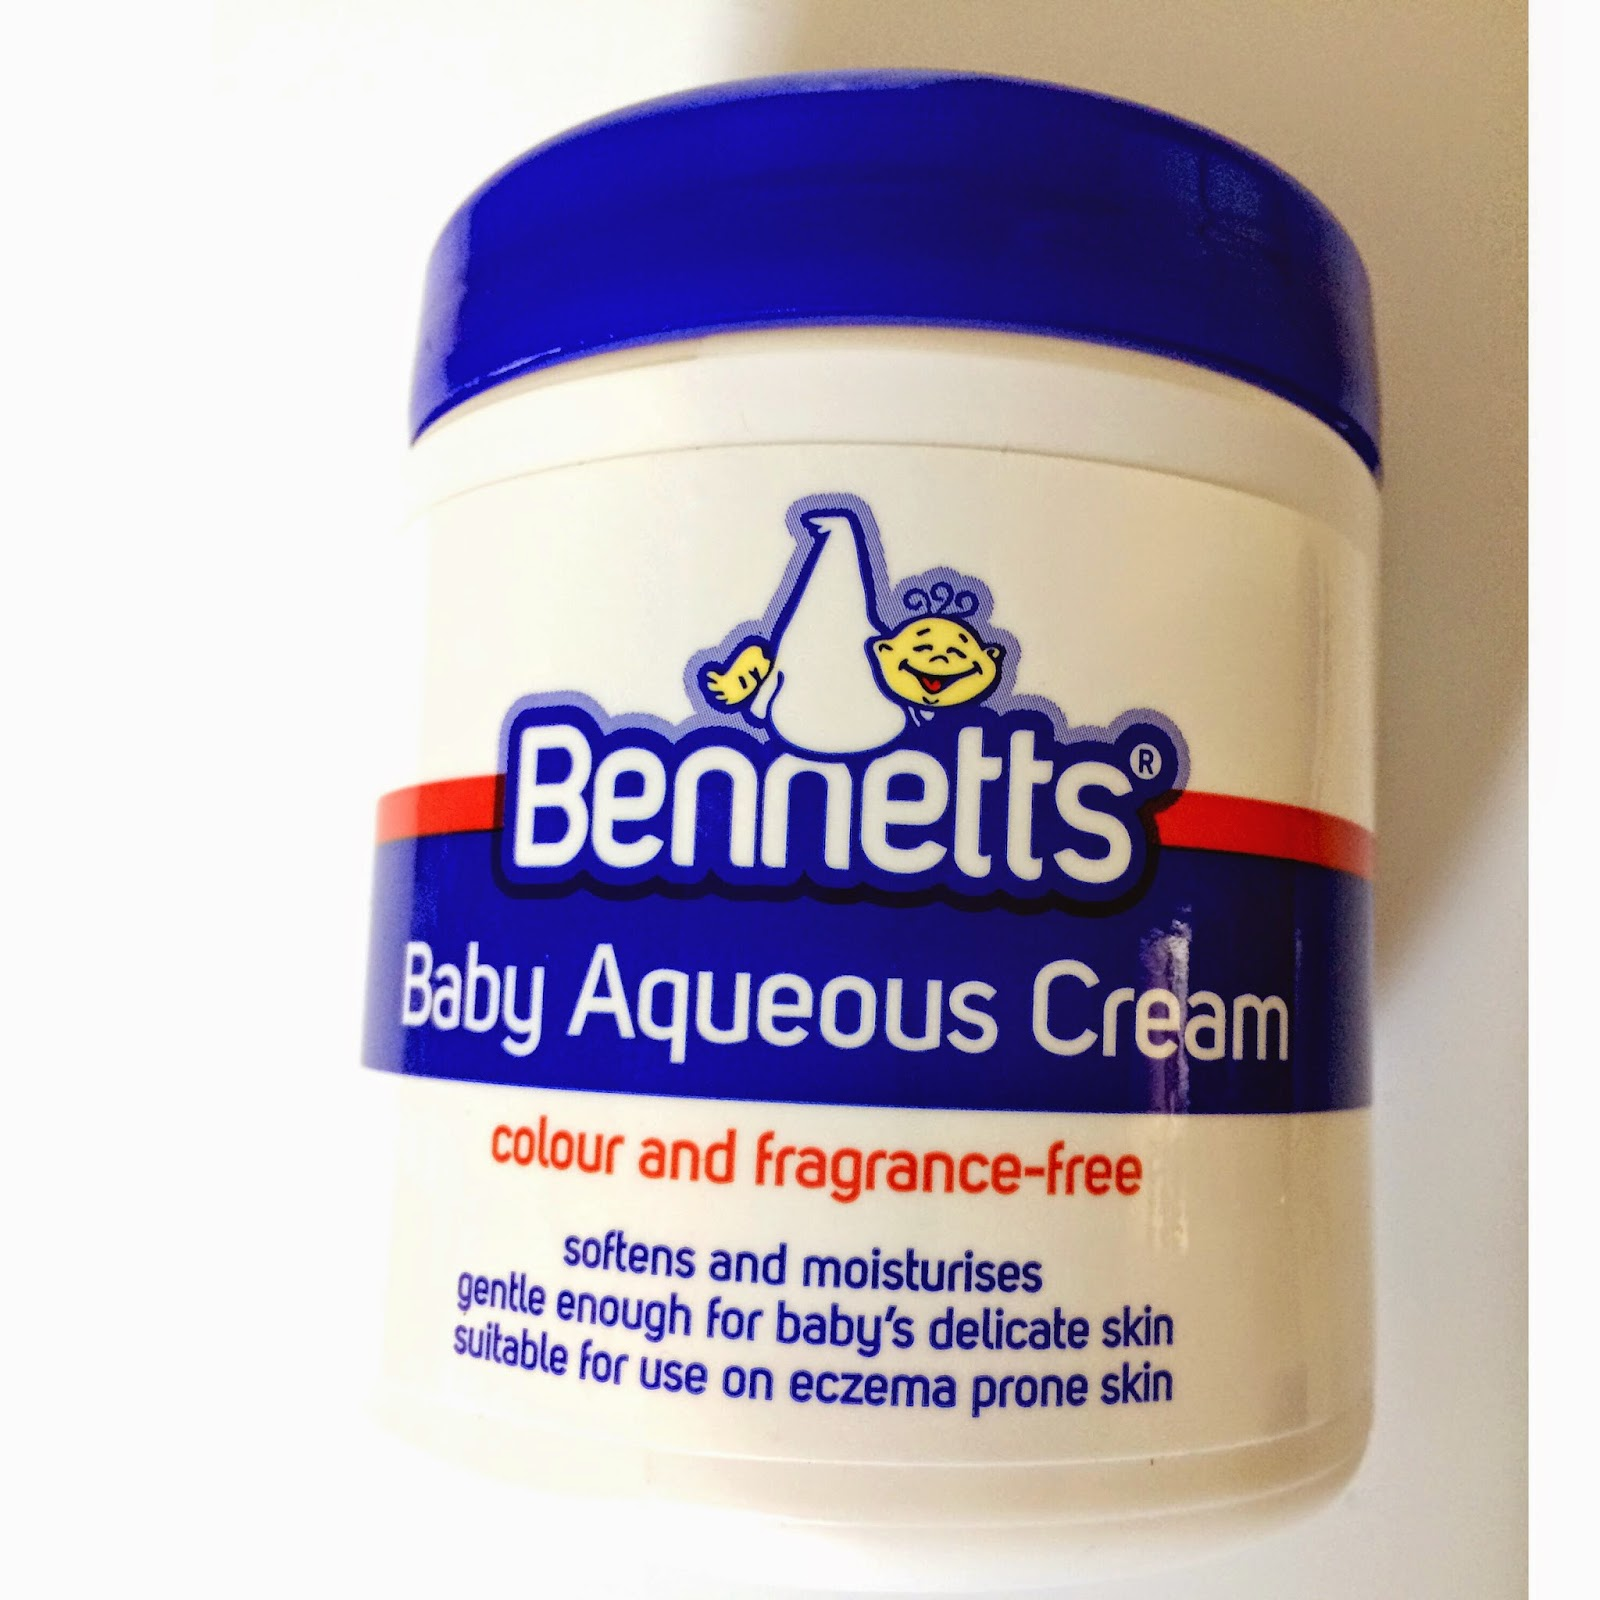 Bennetts tub of baby aqueous cream